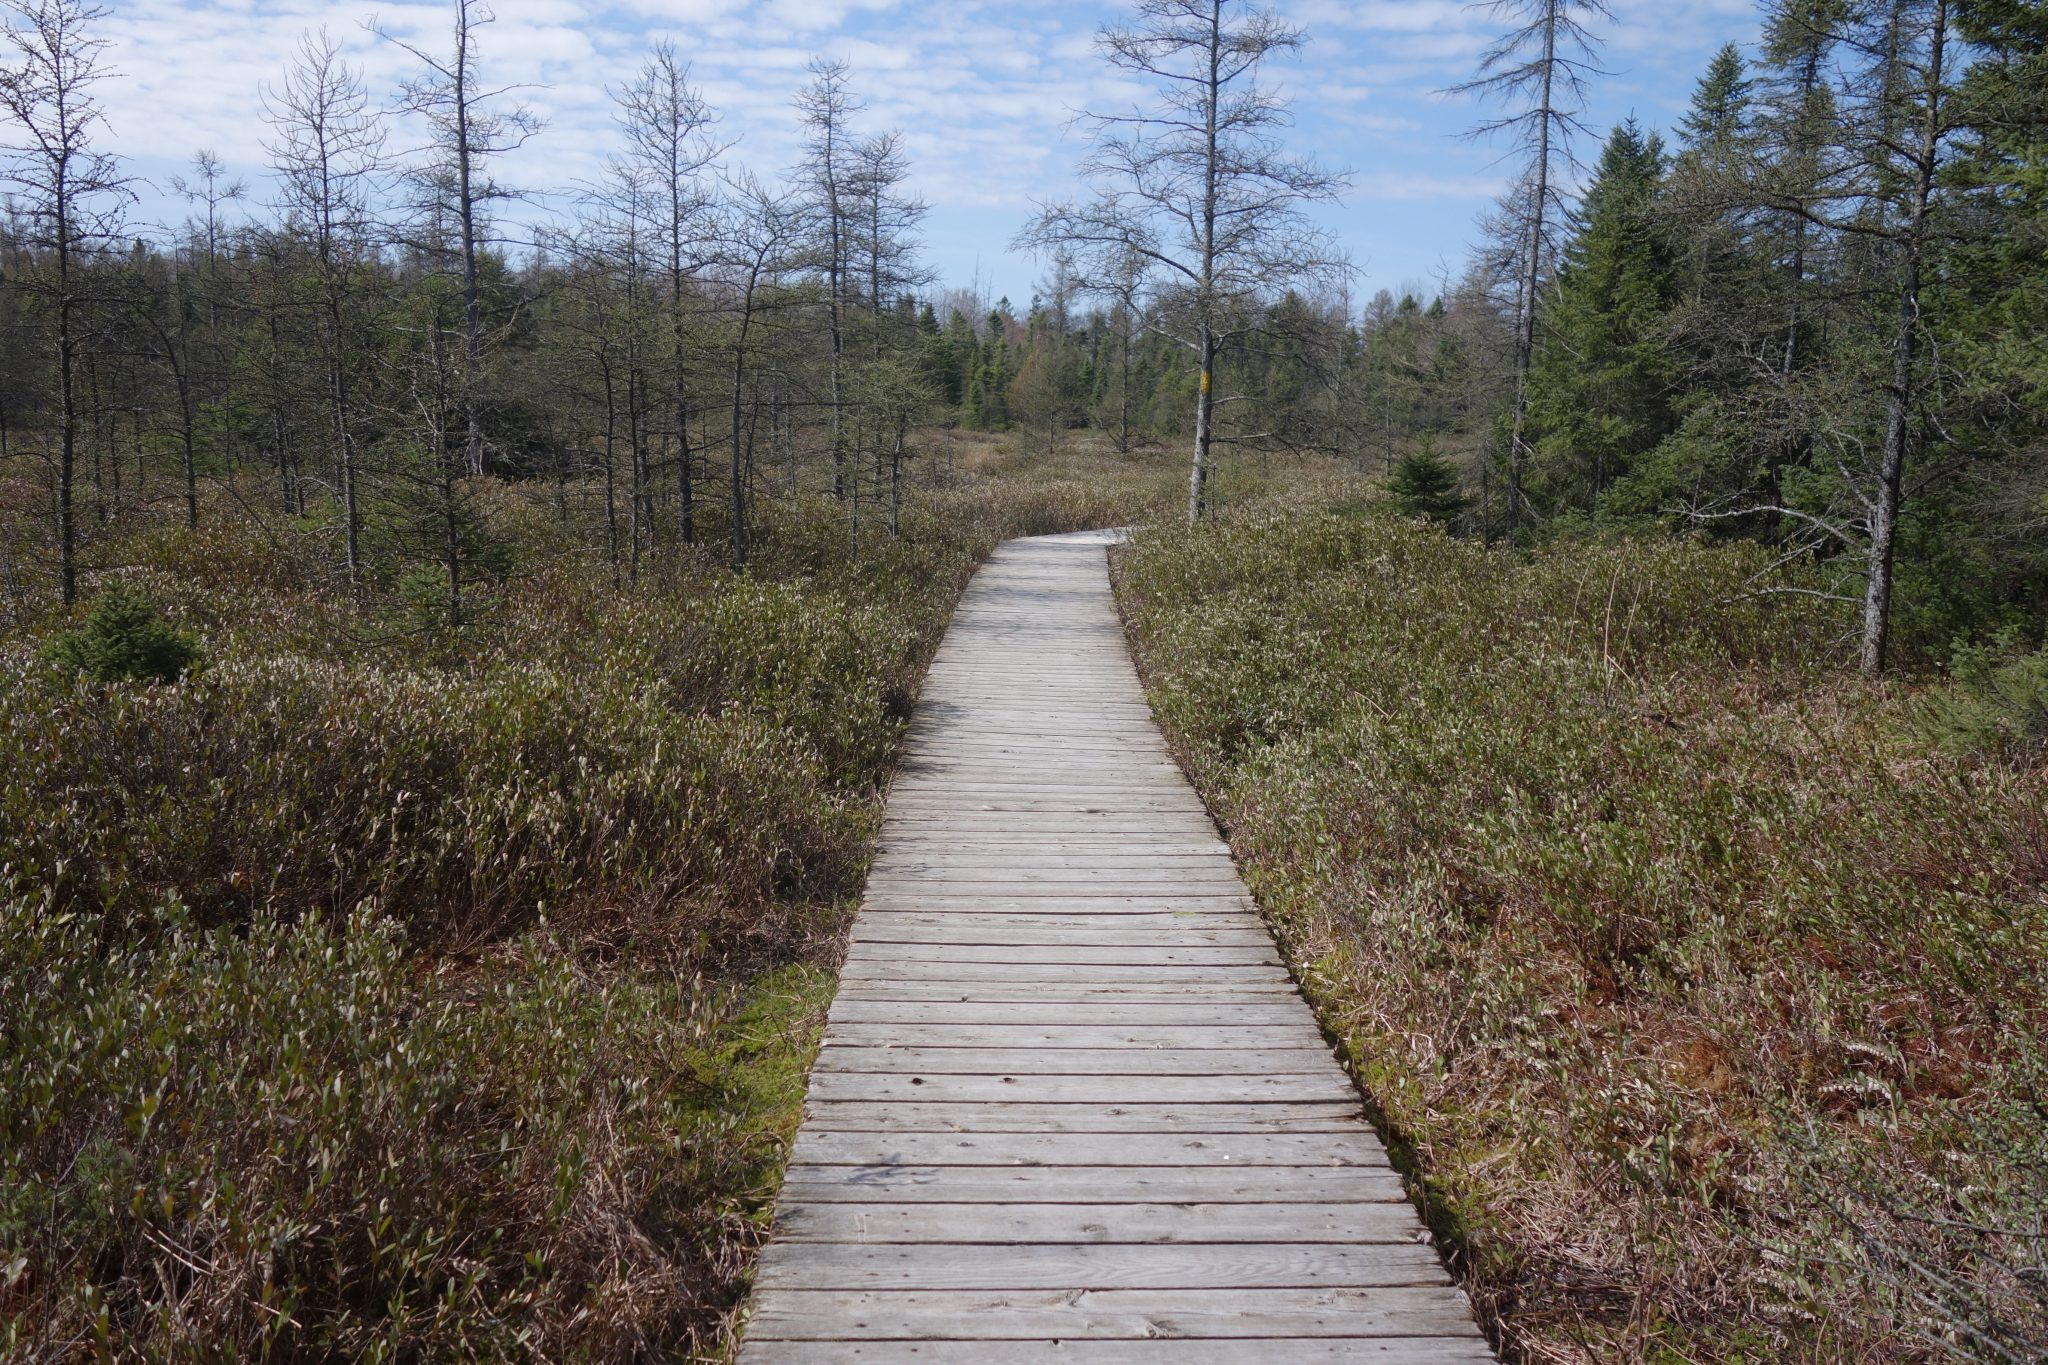 A wooden boardwalk leading through a bog with trees and shrubs.